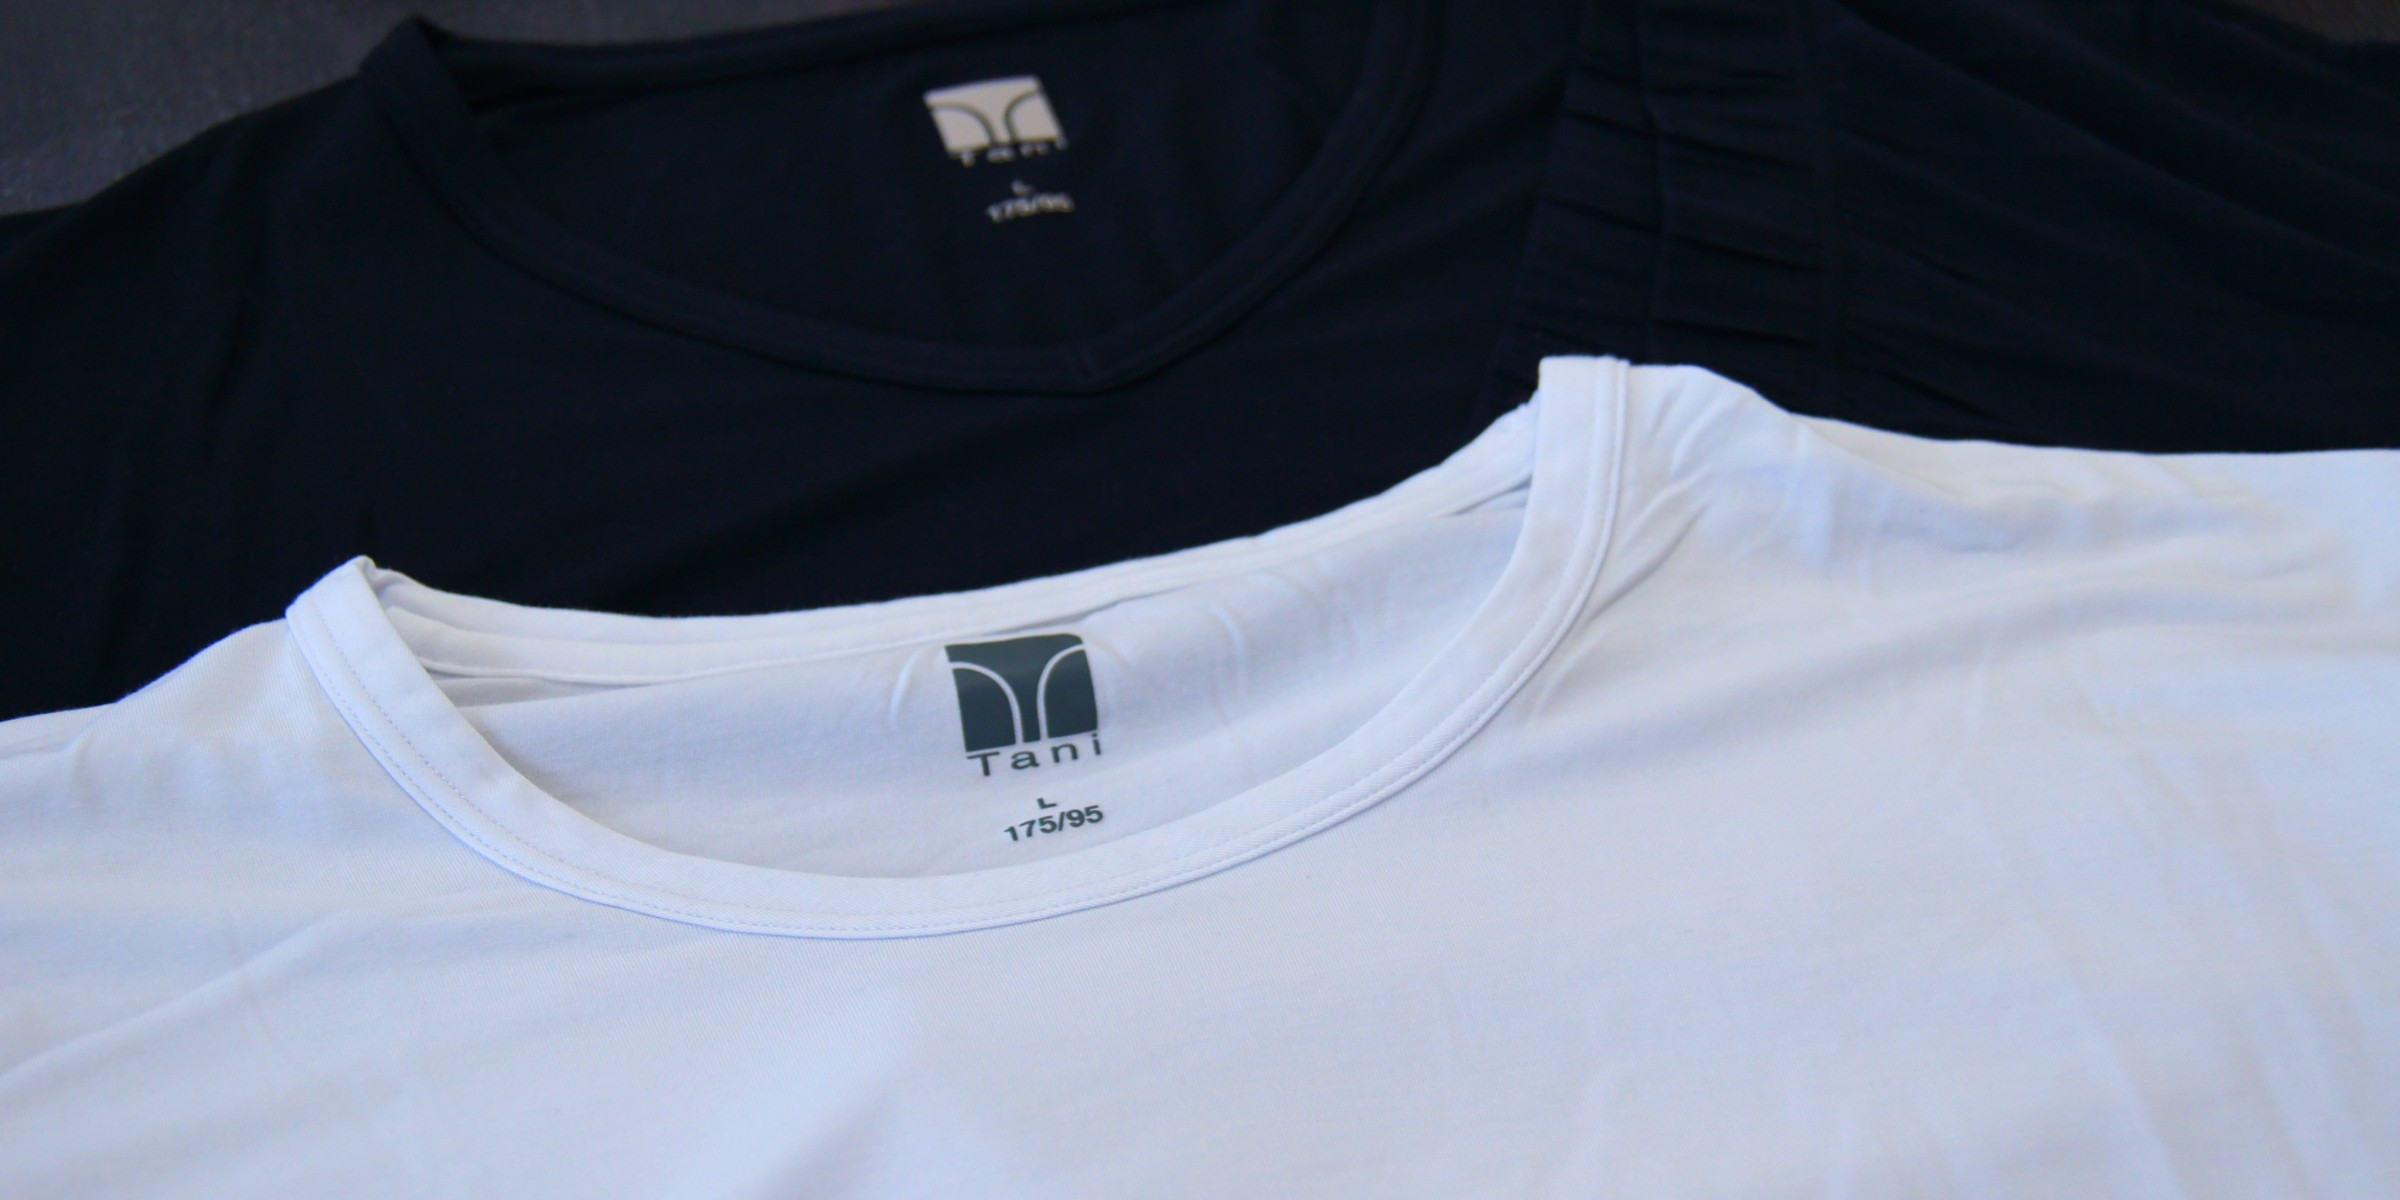 Review: Tani Undershirts & Thermals — Is A $75 Undershirt Worth It???